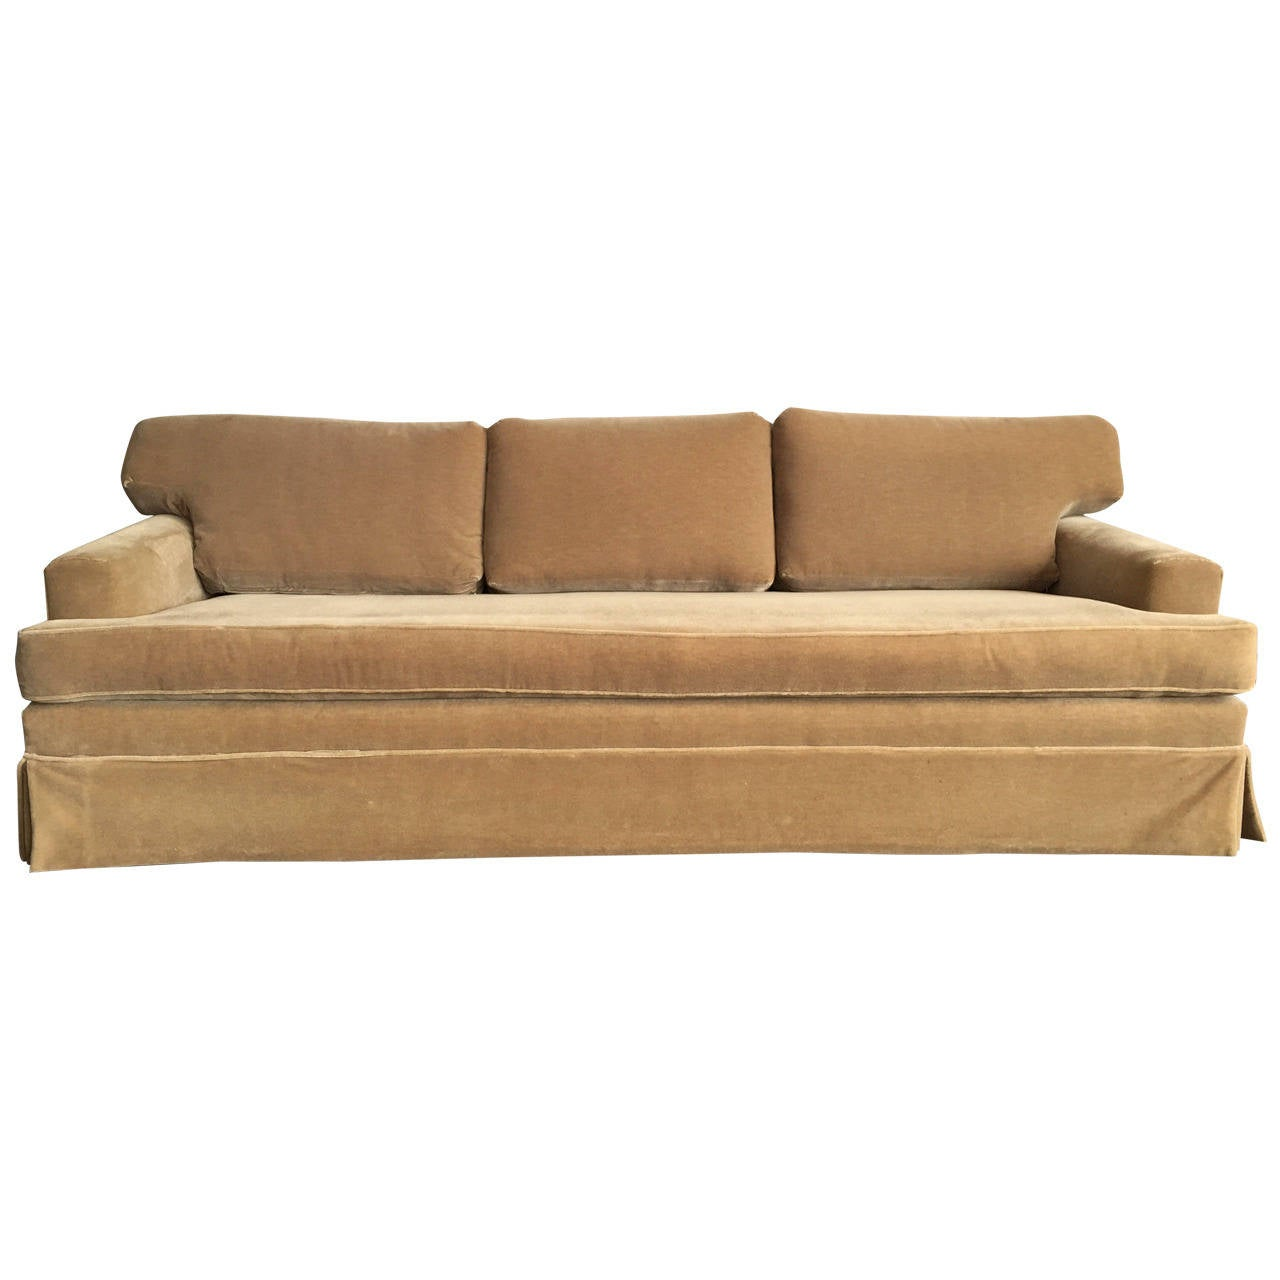 Extra long classic jmf style mohair sofa for sale at 1stdibs for Long couches for sale